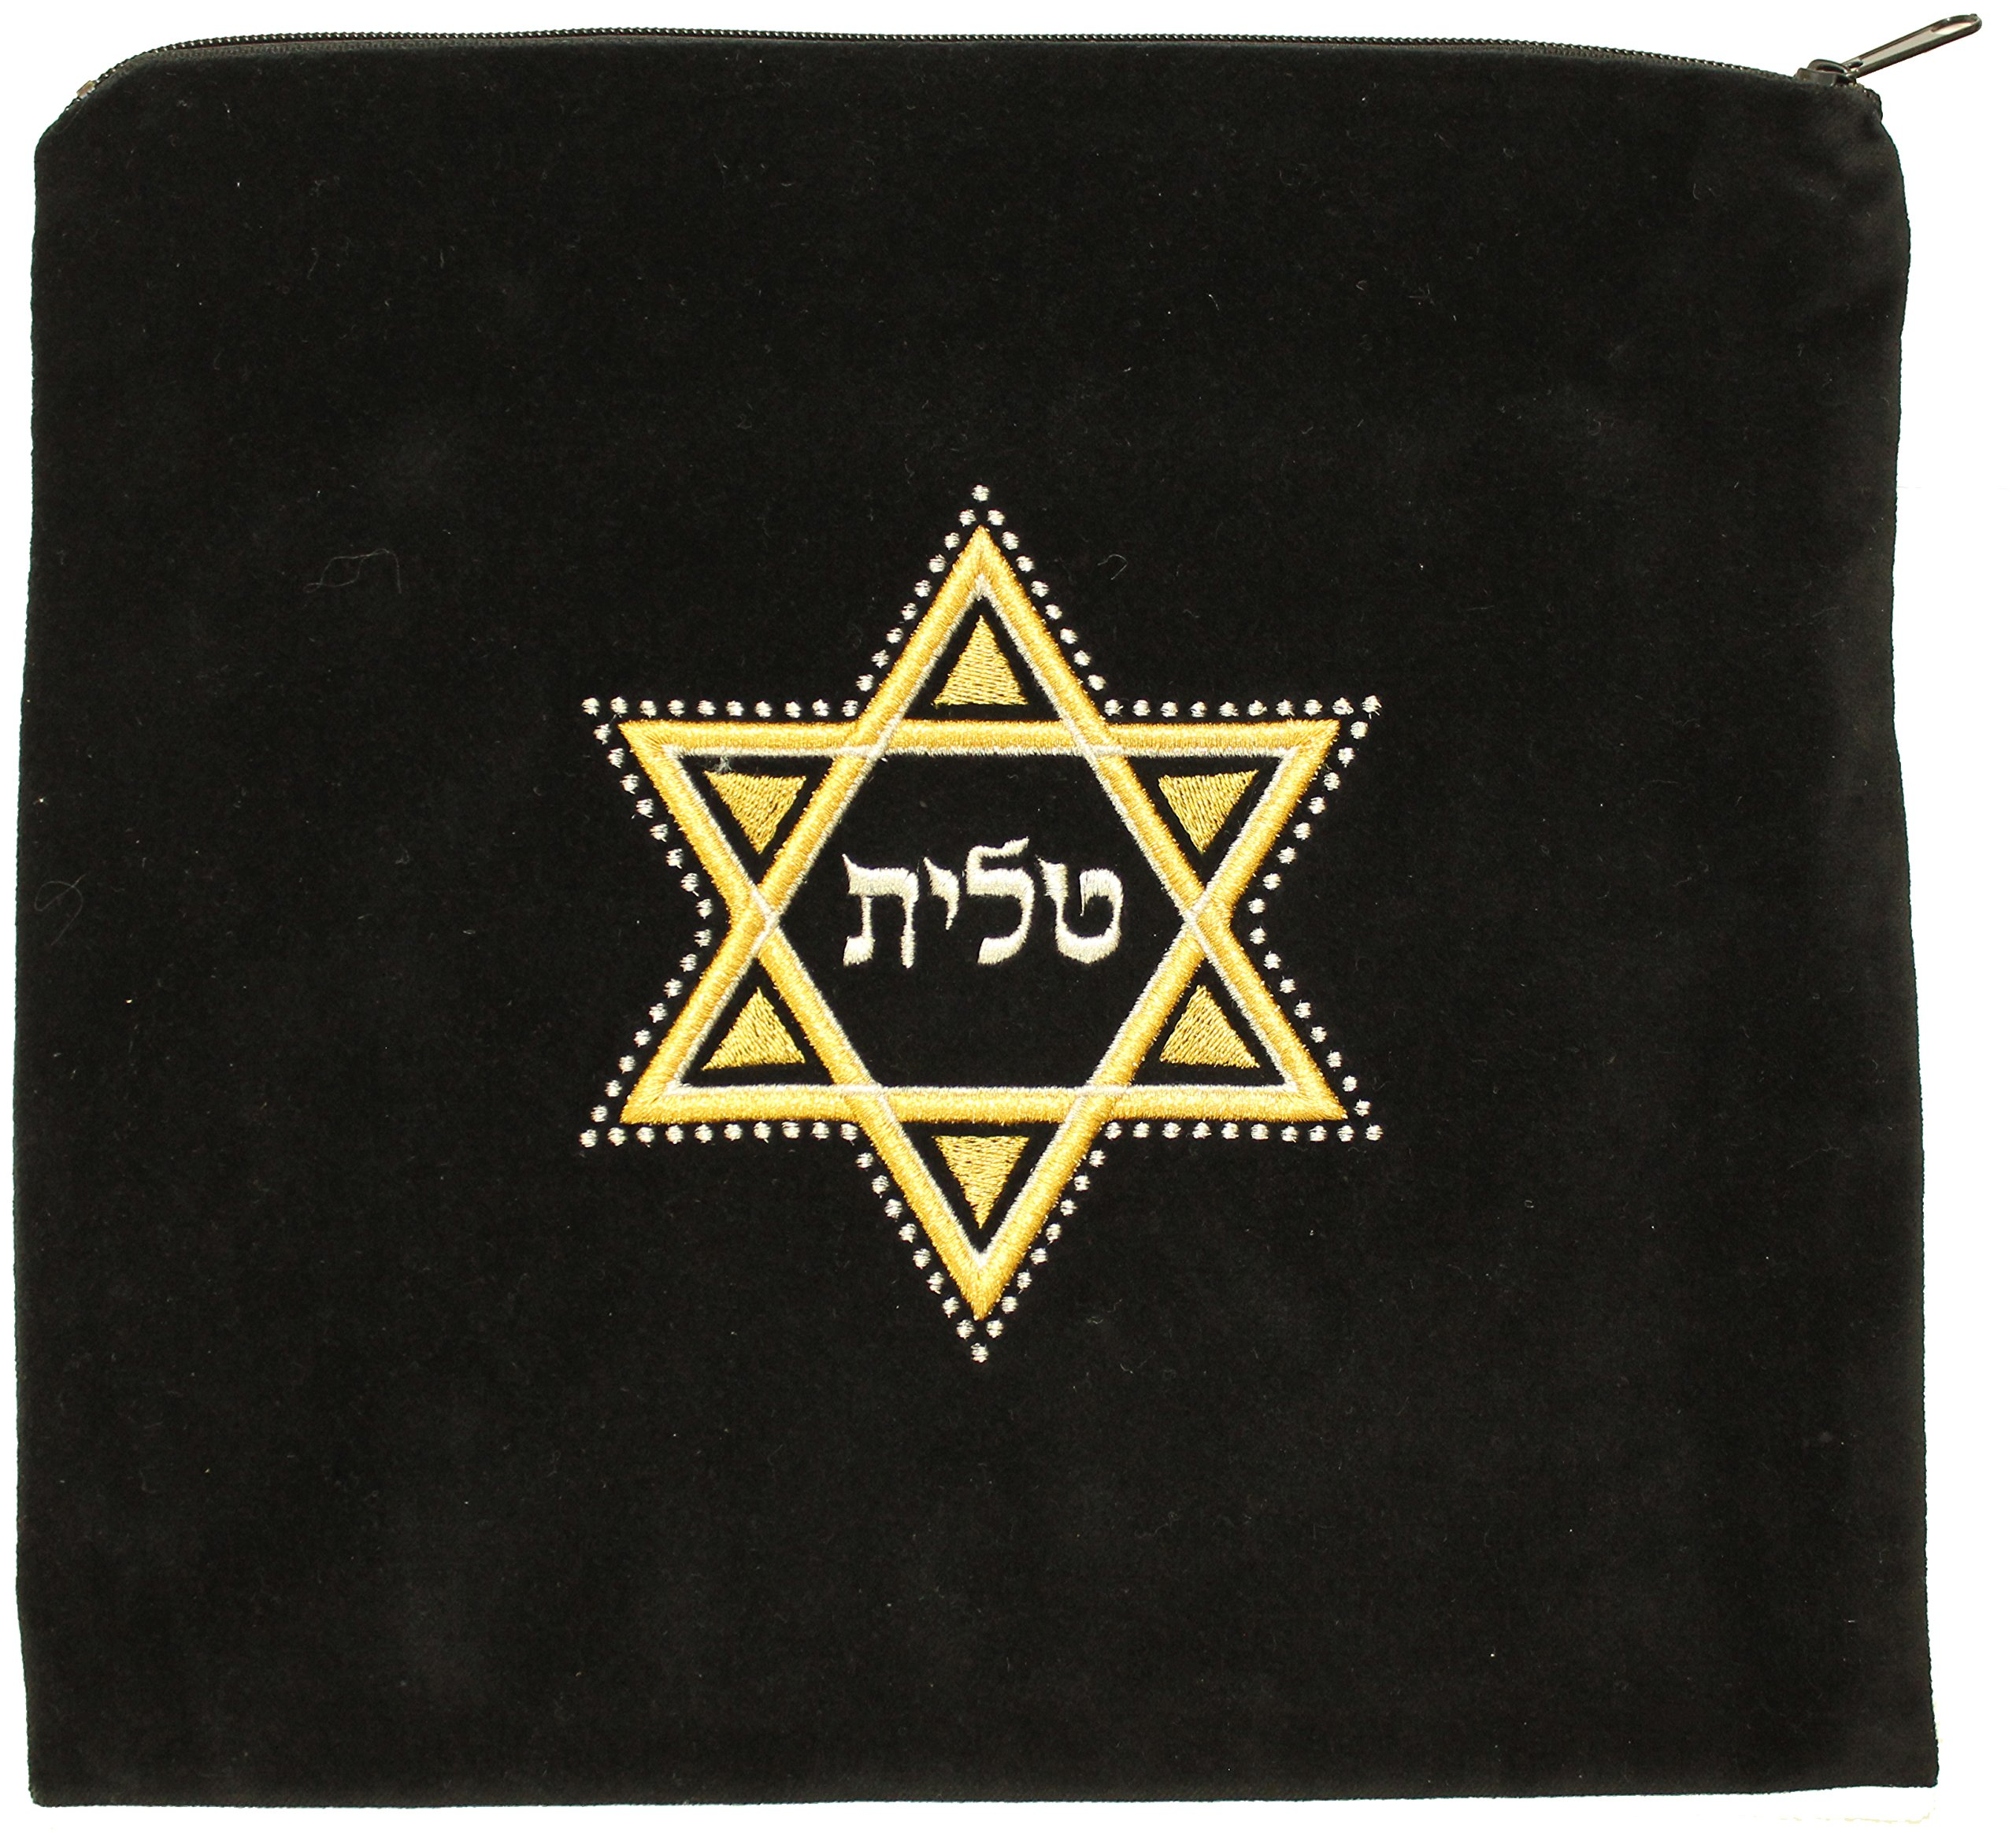 Majestic Giftware Gift Bag Tallis Velvet Embroidery Star of David Design, 12.5'' x 11.5'', Black/Gold/Silver by Majestic Giftware